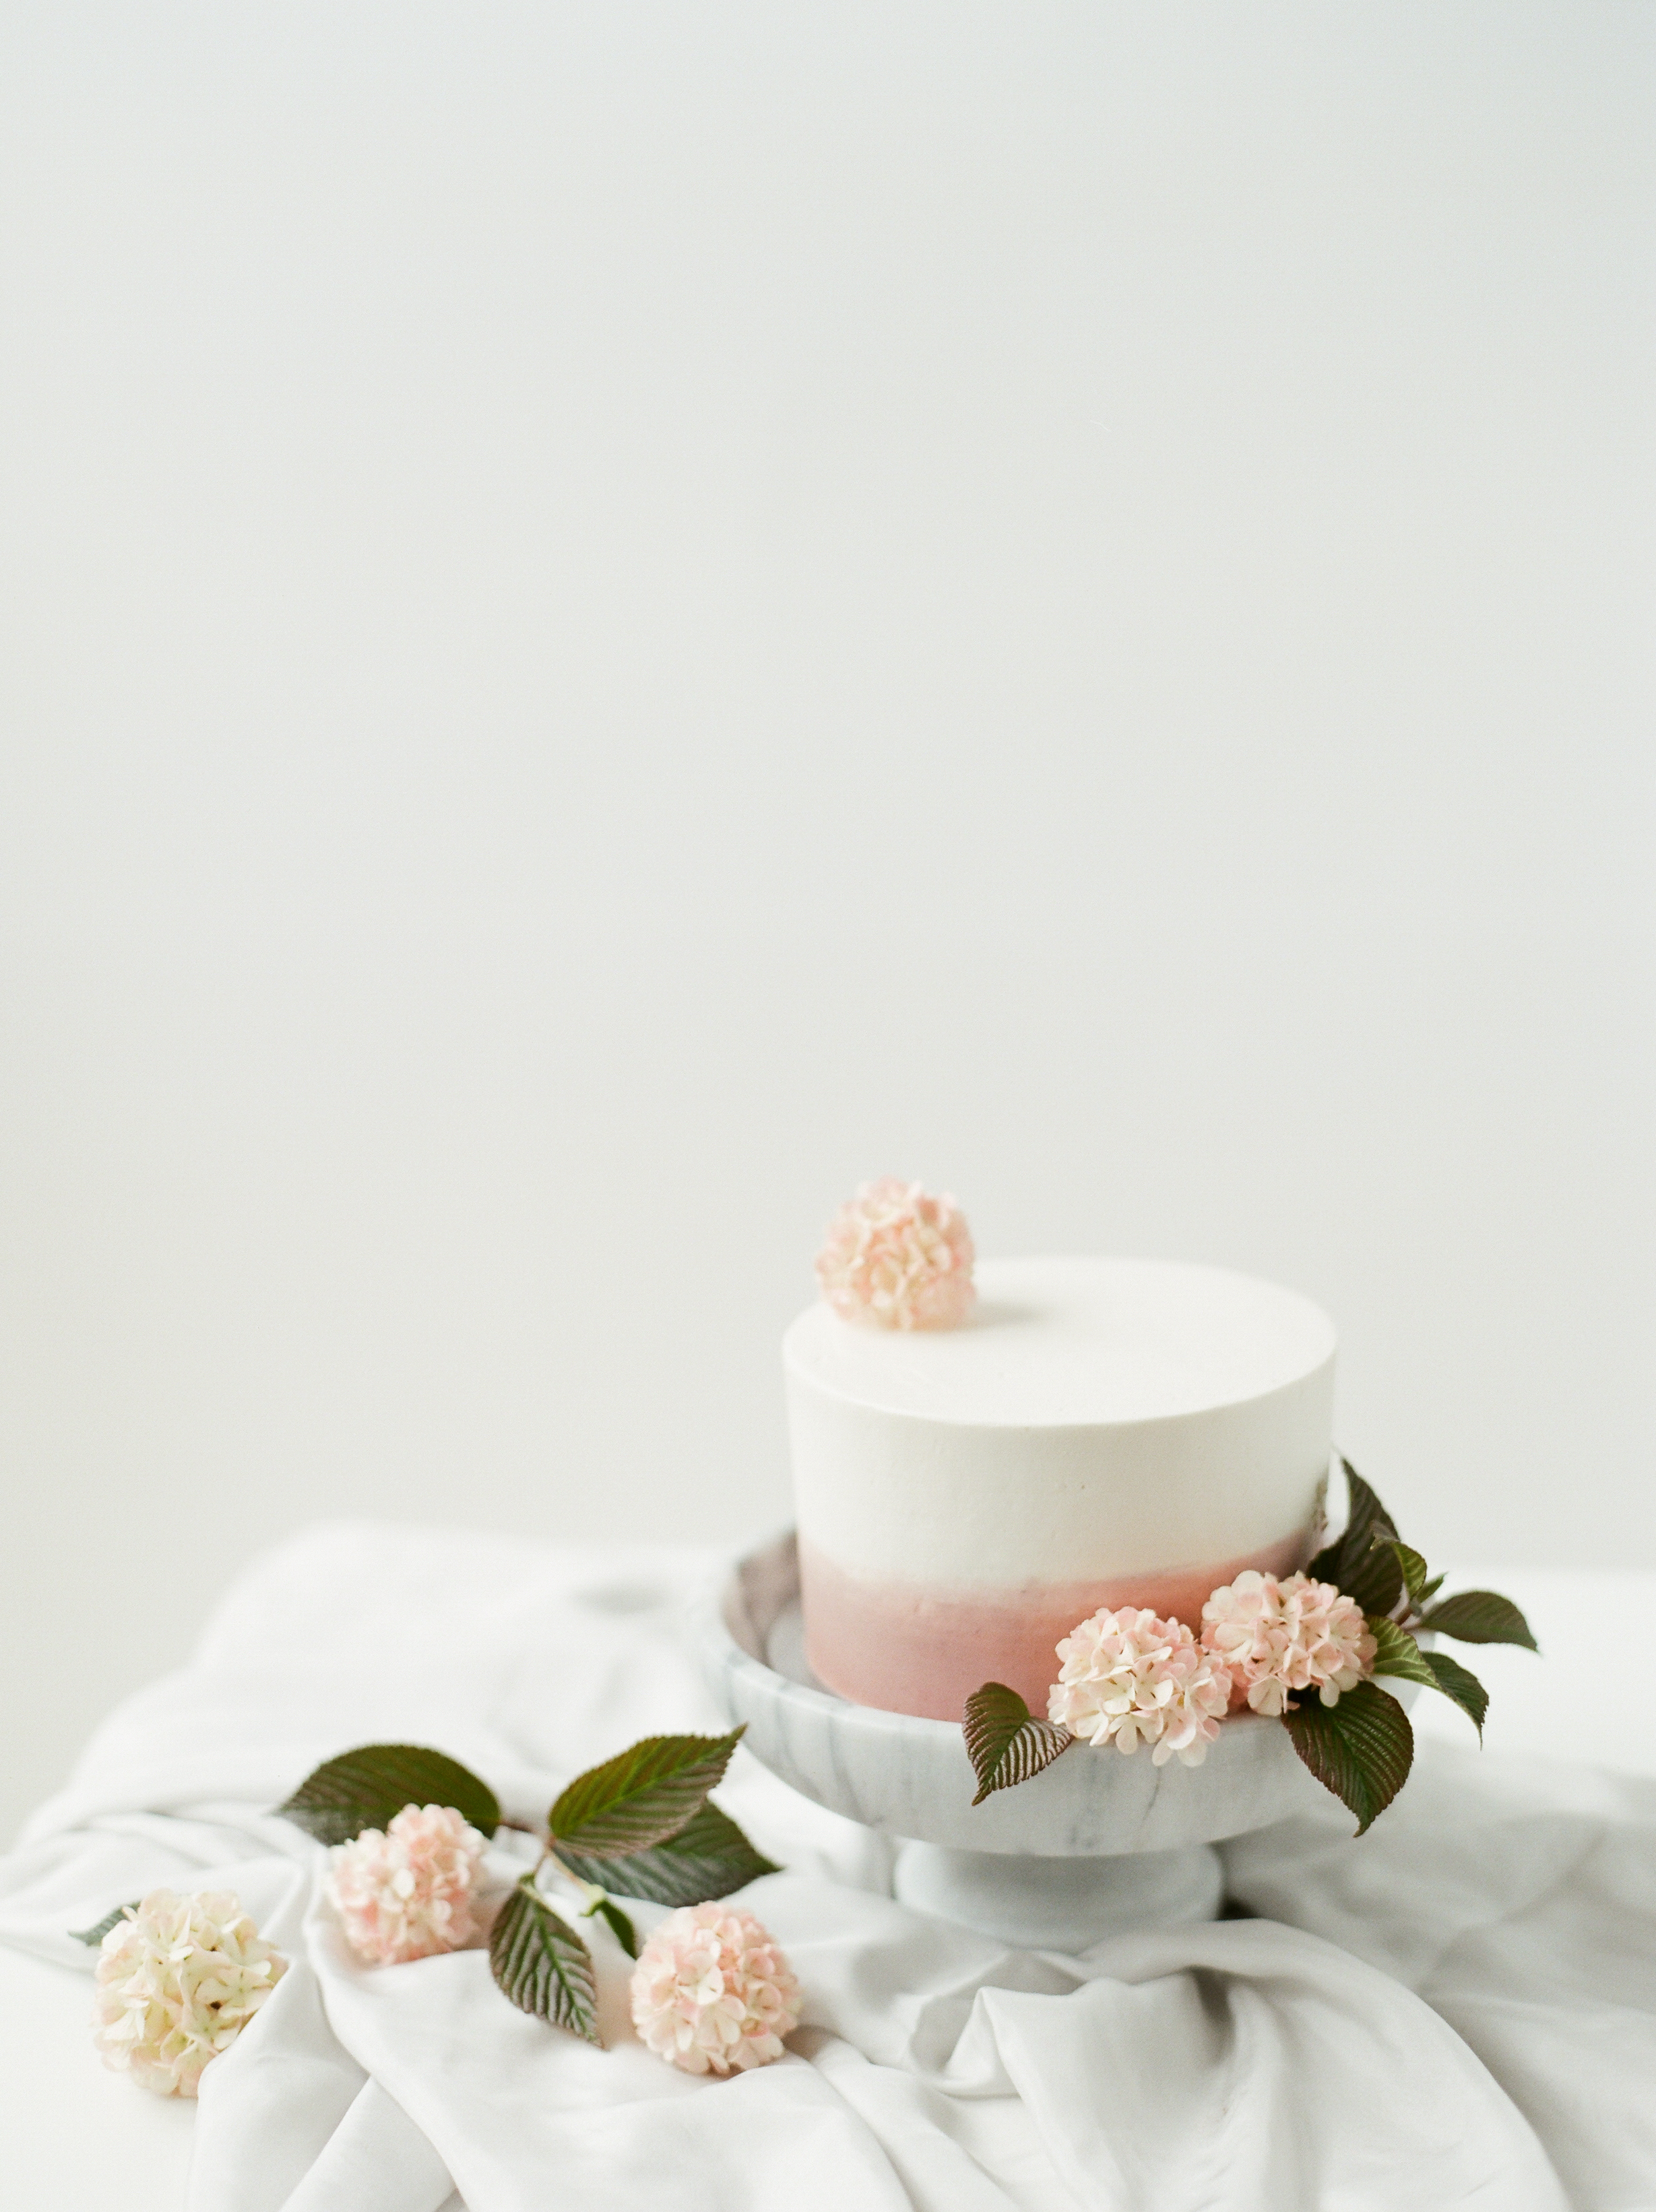 unique cake ideas featuring fresh flowers as cake toppers on livingforaged.com